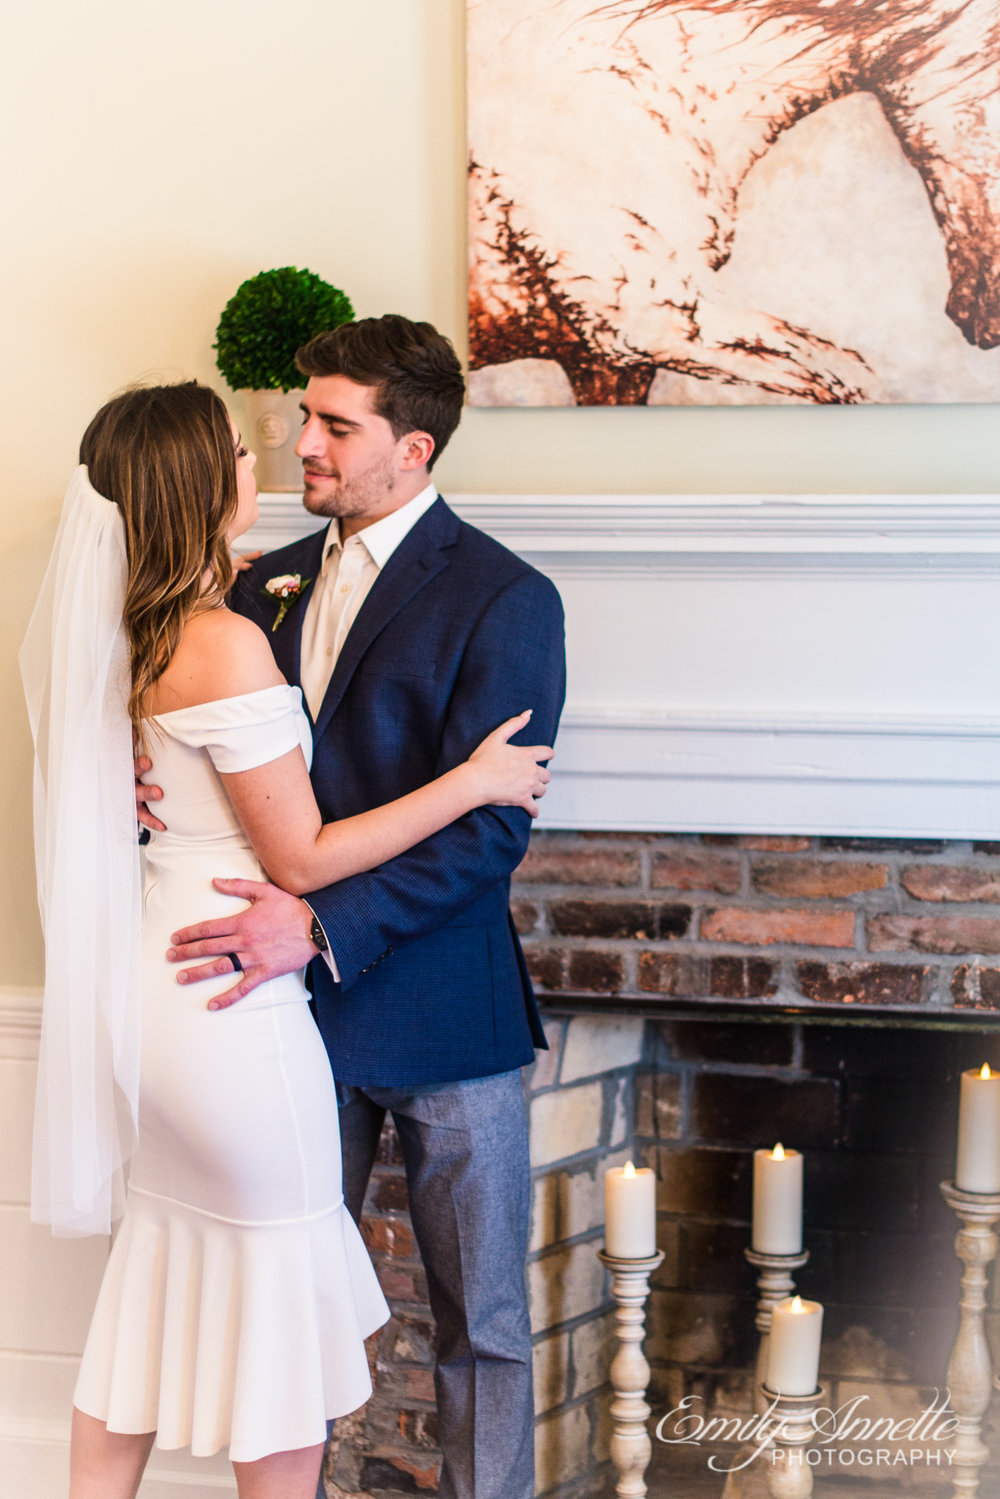 A bride and groom embrace while standing next to a fireplace filled with candles on their wedding day at Fleetwood Farm Winery in Leesburg, Virginia